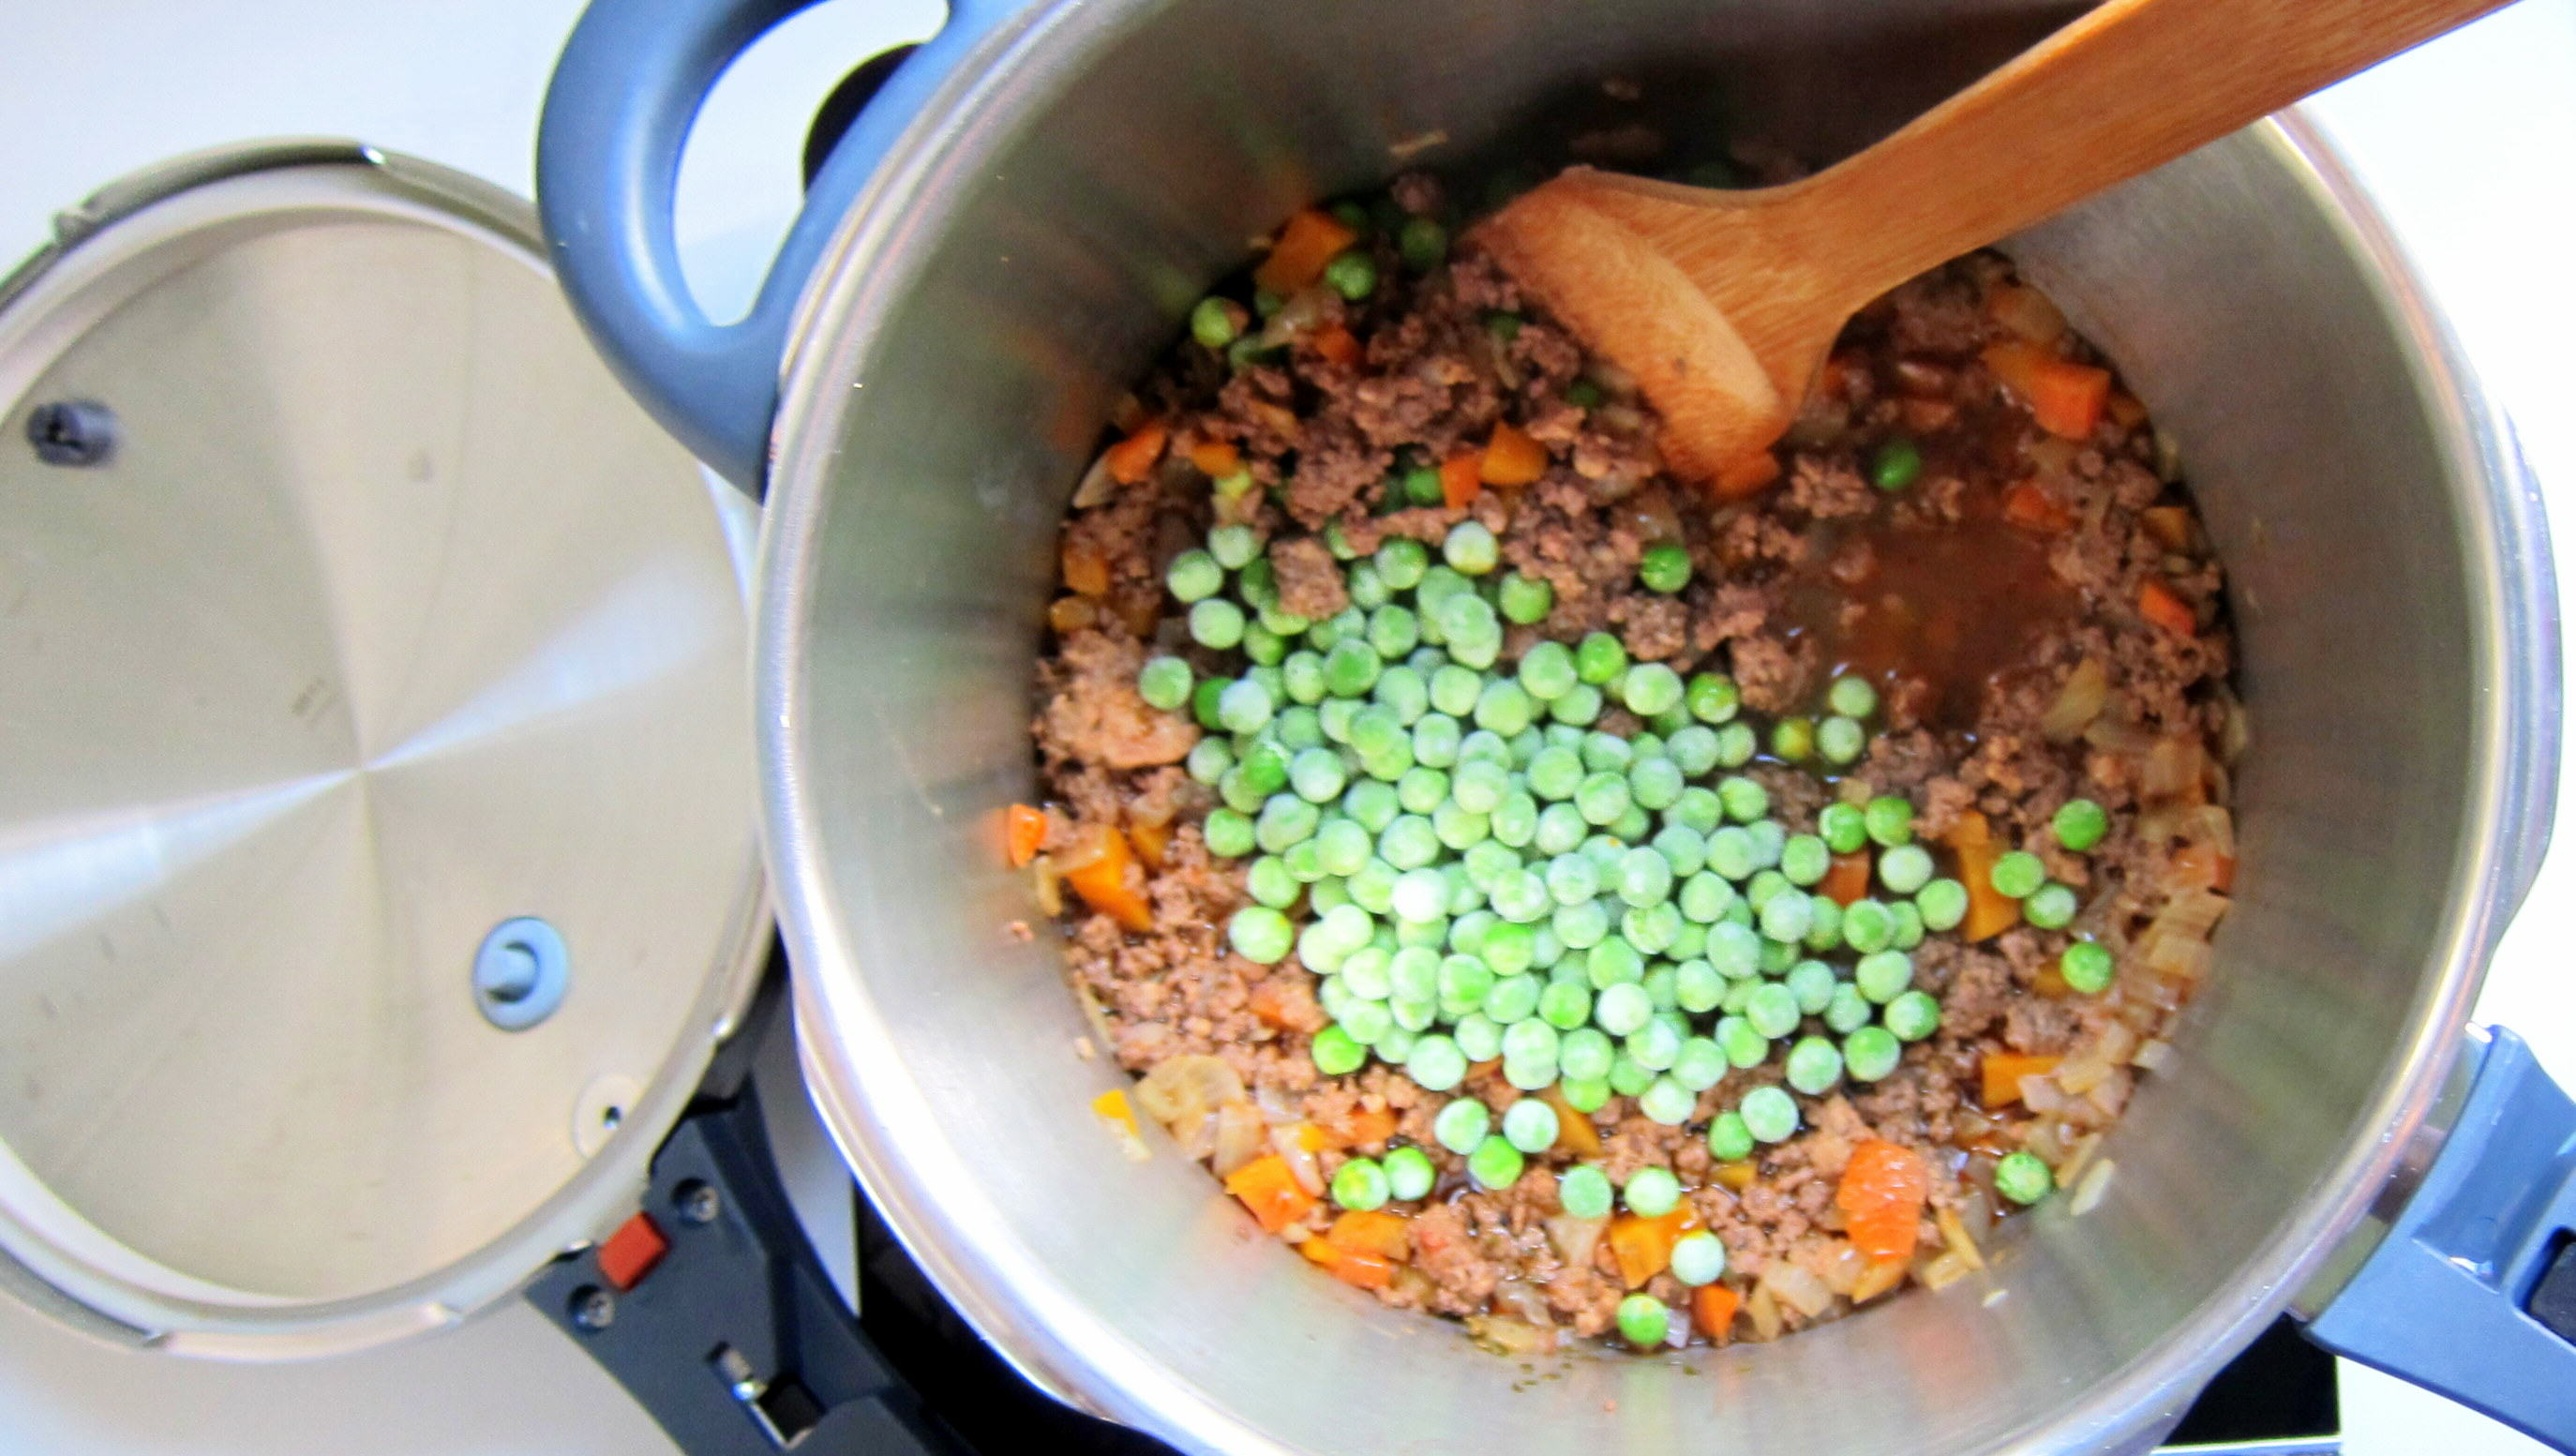 After pressure cooking, toss in the frozen pease and mix into the hot meat sauce.